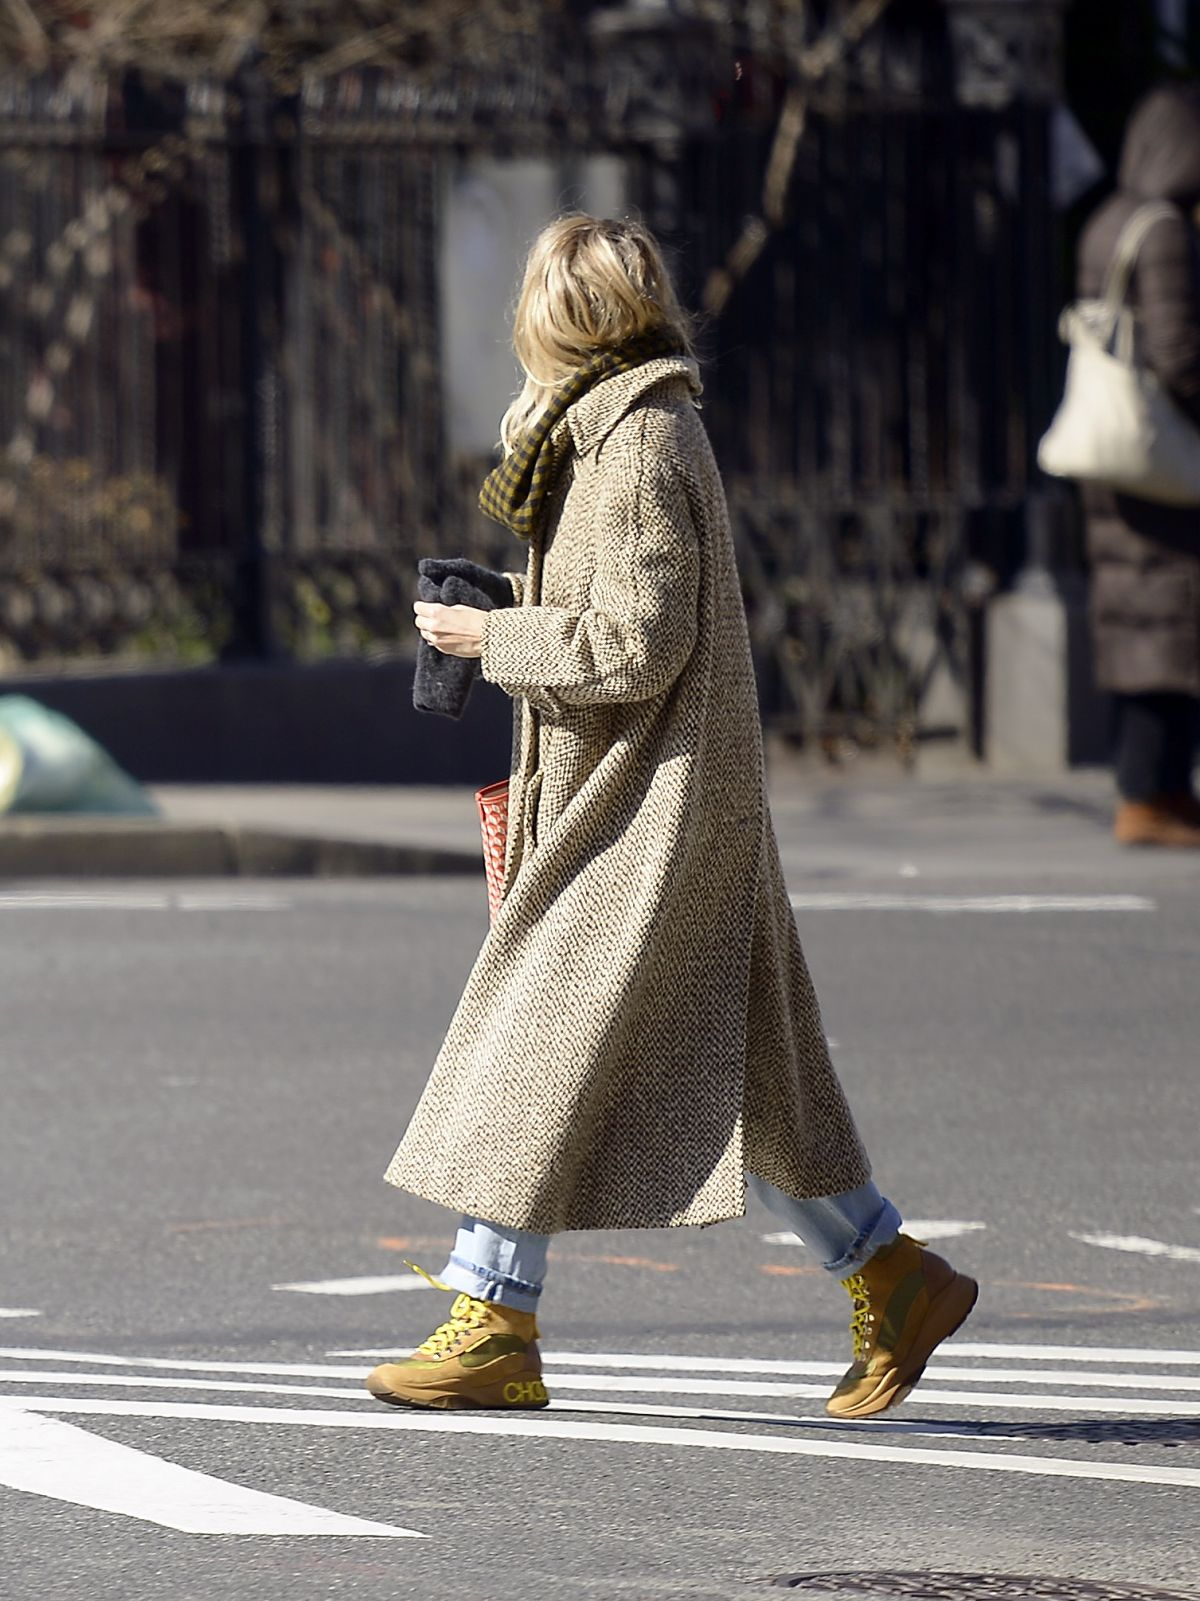 Sienna Miller Bundles Up For The Freezing New York City